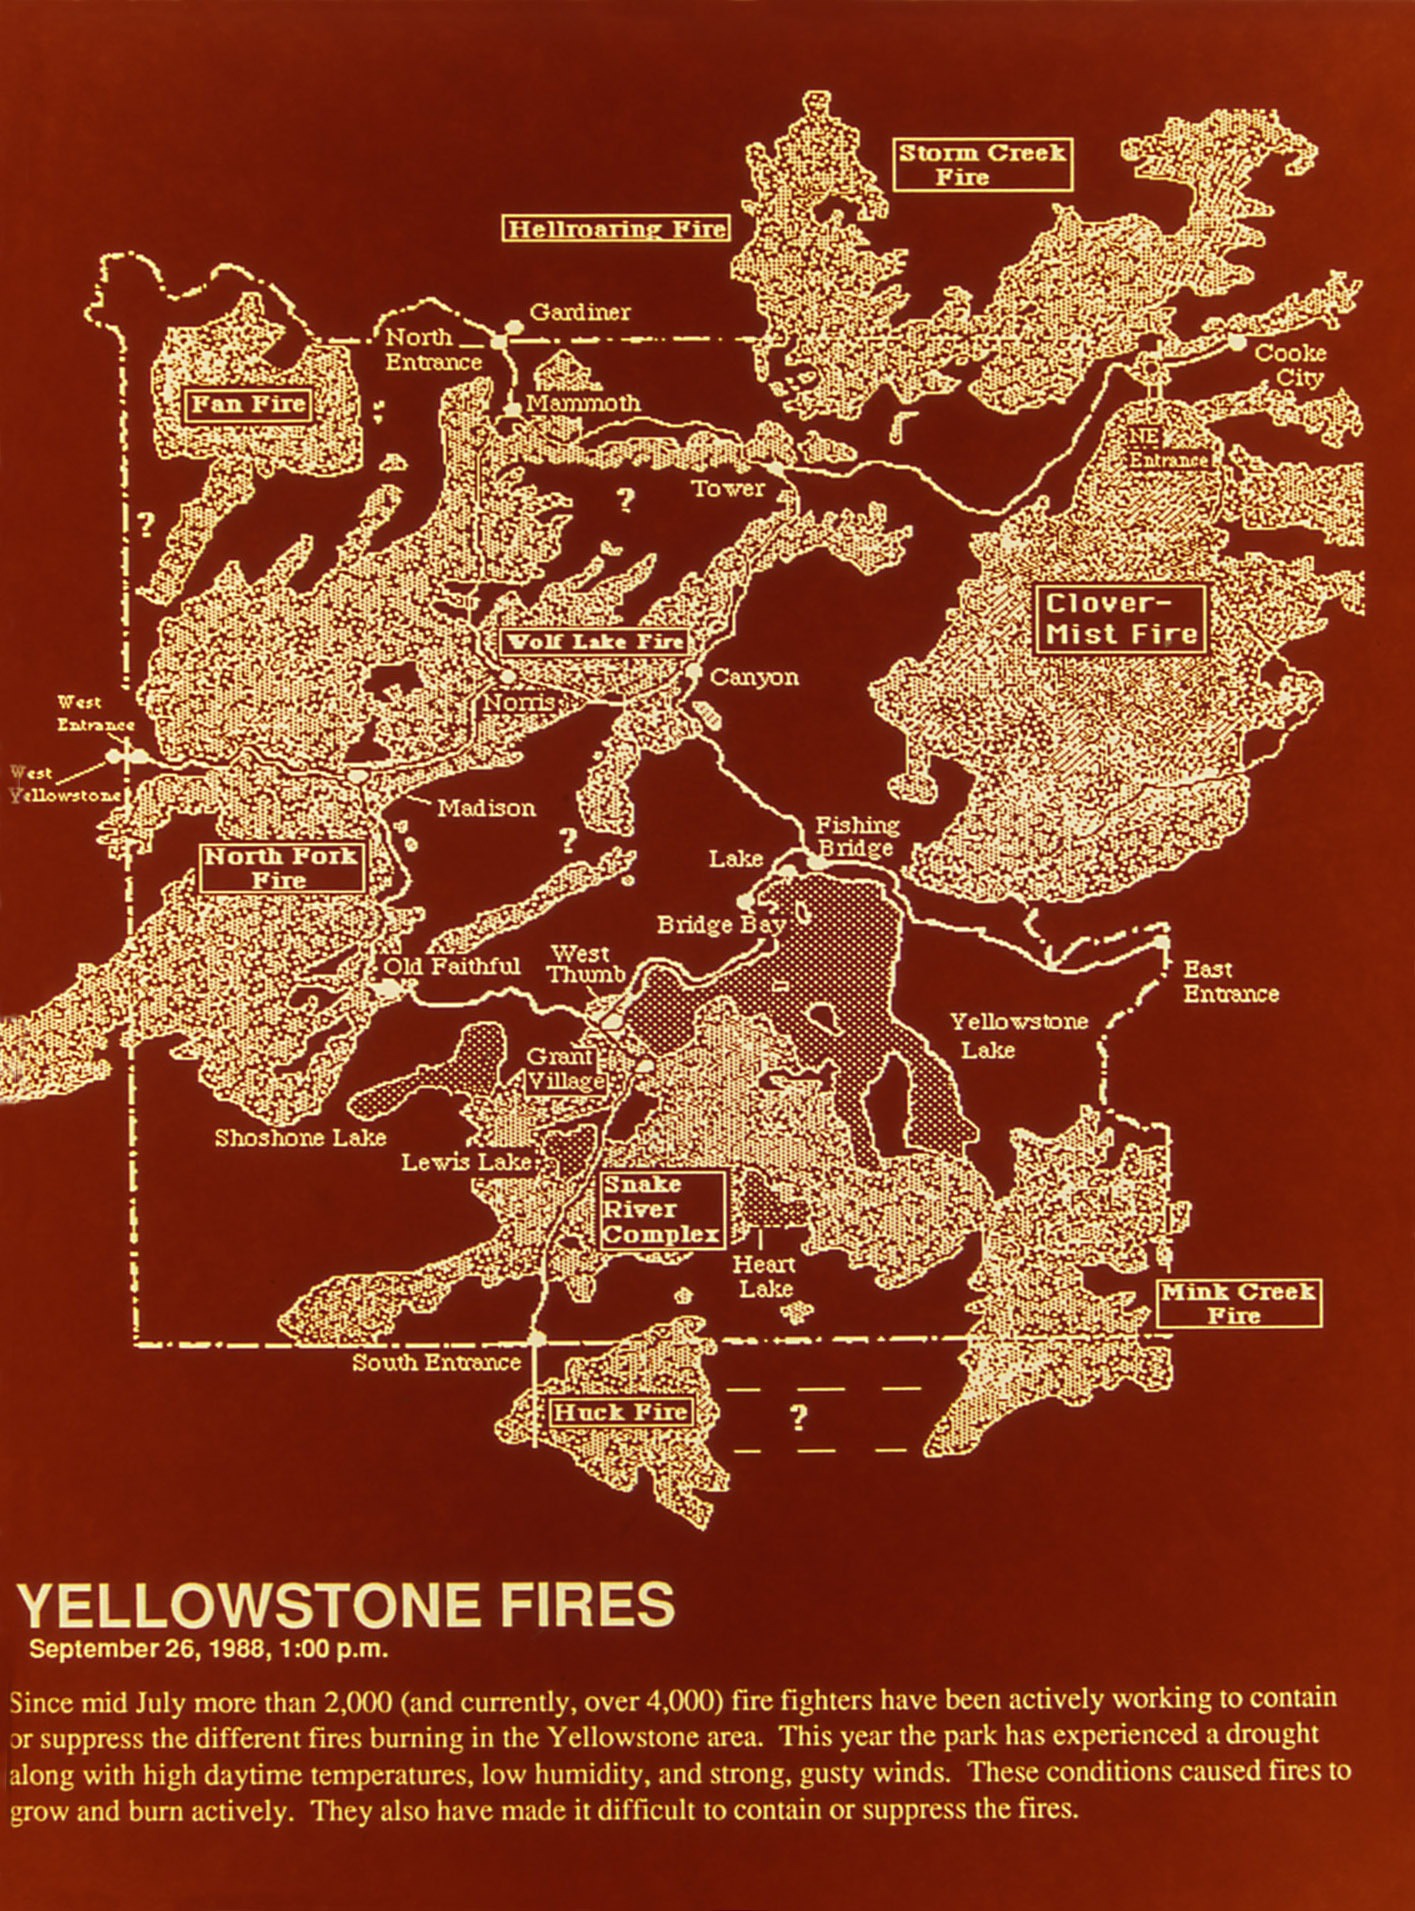 Yellowstone's Photo Collection on sequoia fire map, valley fire map, lake fire map, wyoming fire map, beaver fire map, dodge fire map, idaho fire map, earth fire map, monticello fire map, olympic national park fire map, cascade fire map, jackson fire map, yosemite fire map, roosevelt fire map, lincoln fire map, stouts fire map, butte fire map, 1910 fire map, orion fire map, washington fire map,